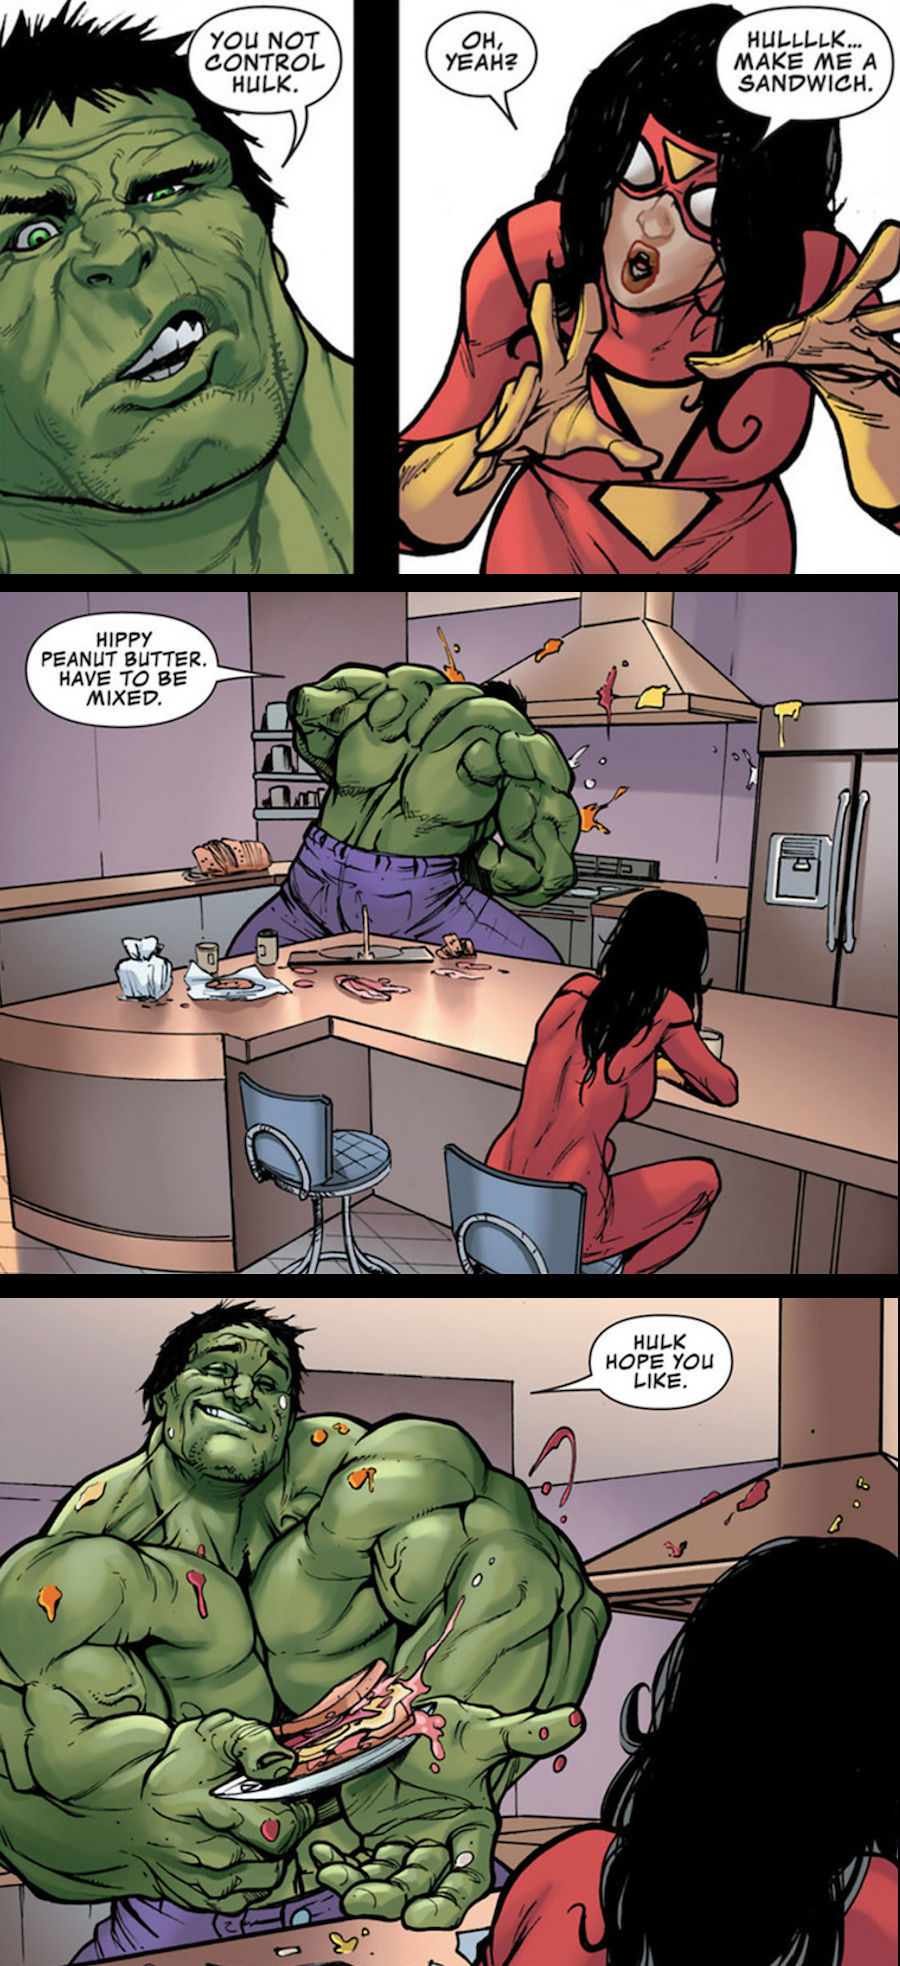 You not control Hulk